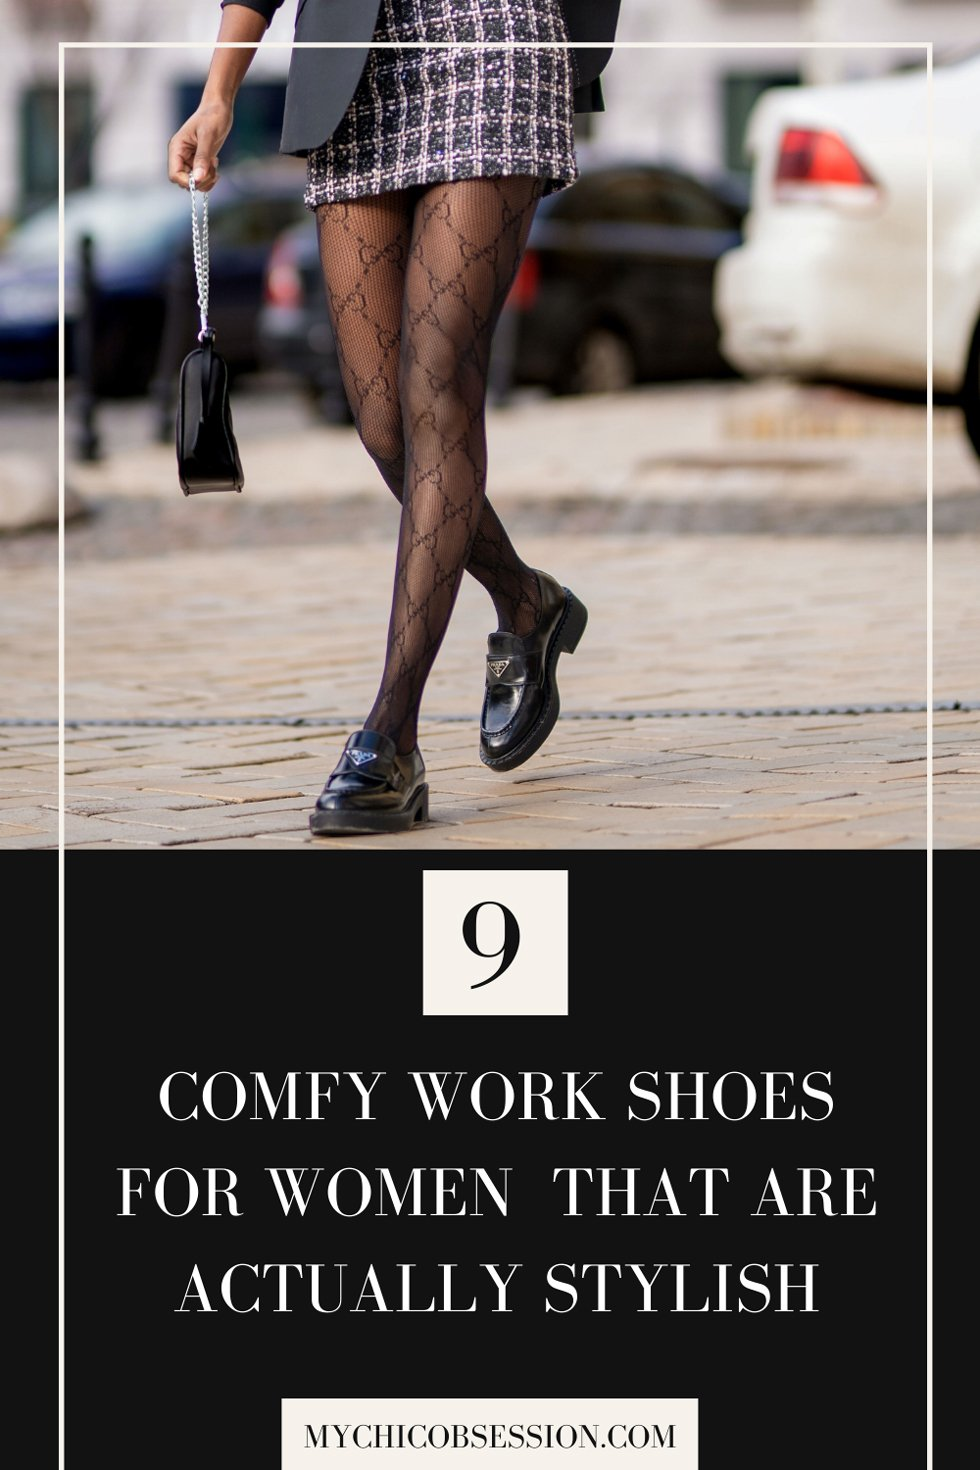 Comfortable work shoes for women that are stylish